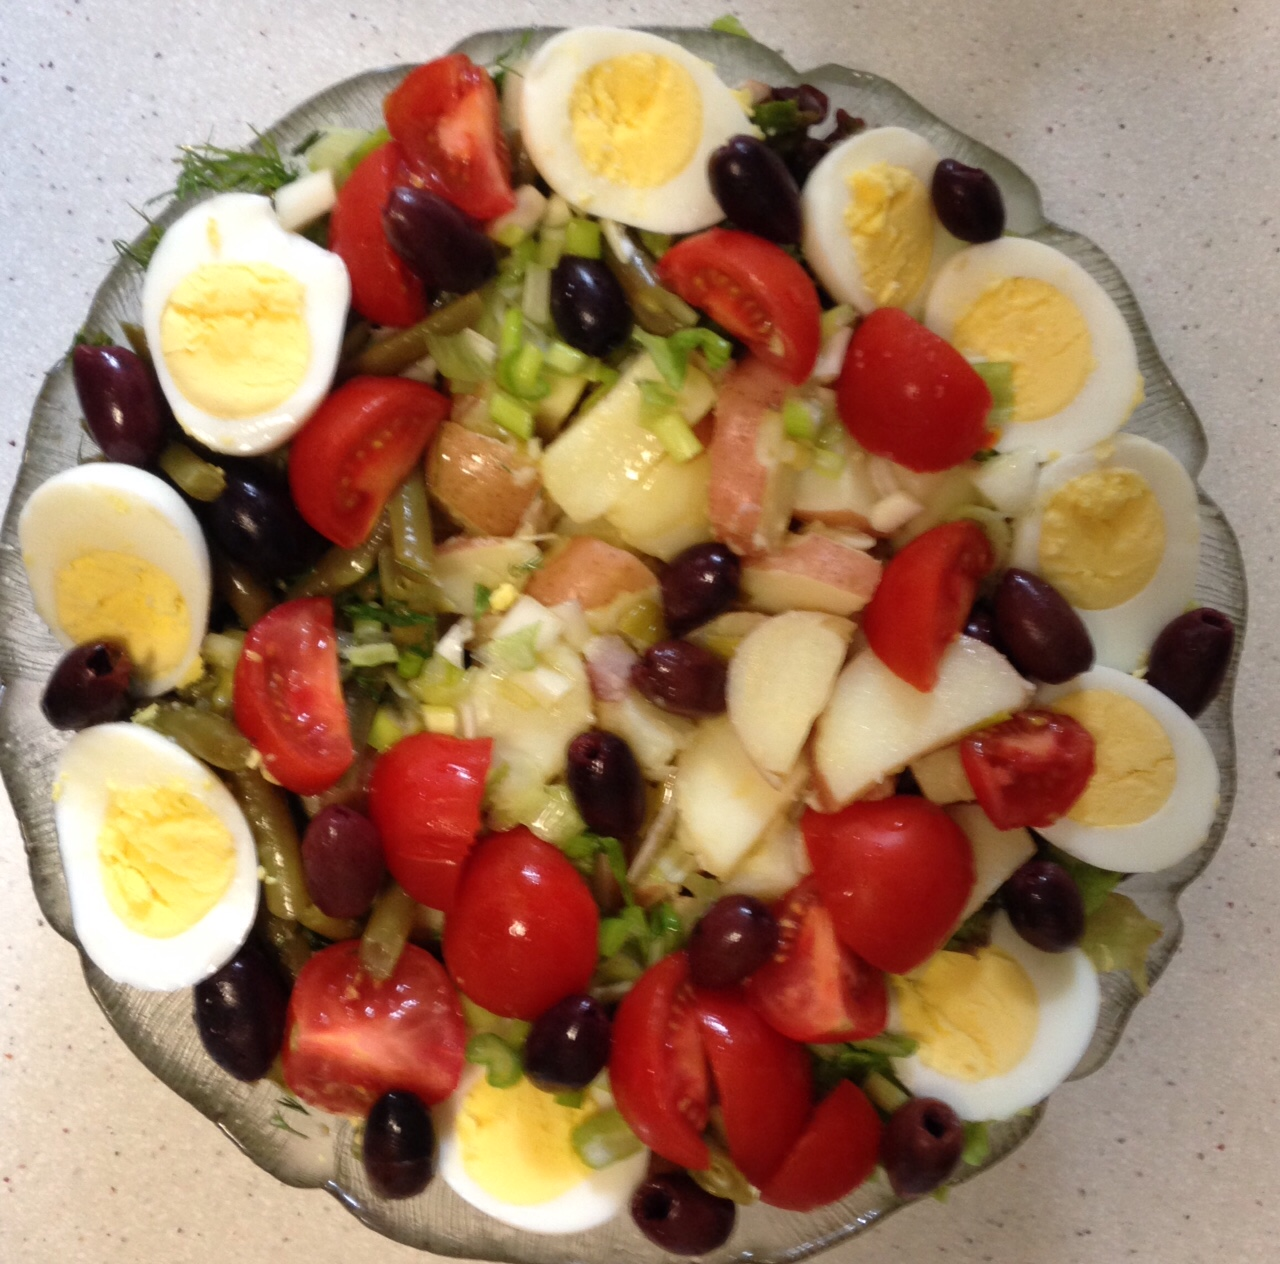 French classic: Salade Niçoise. Often on the menu in neighborhood ...